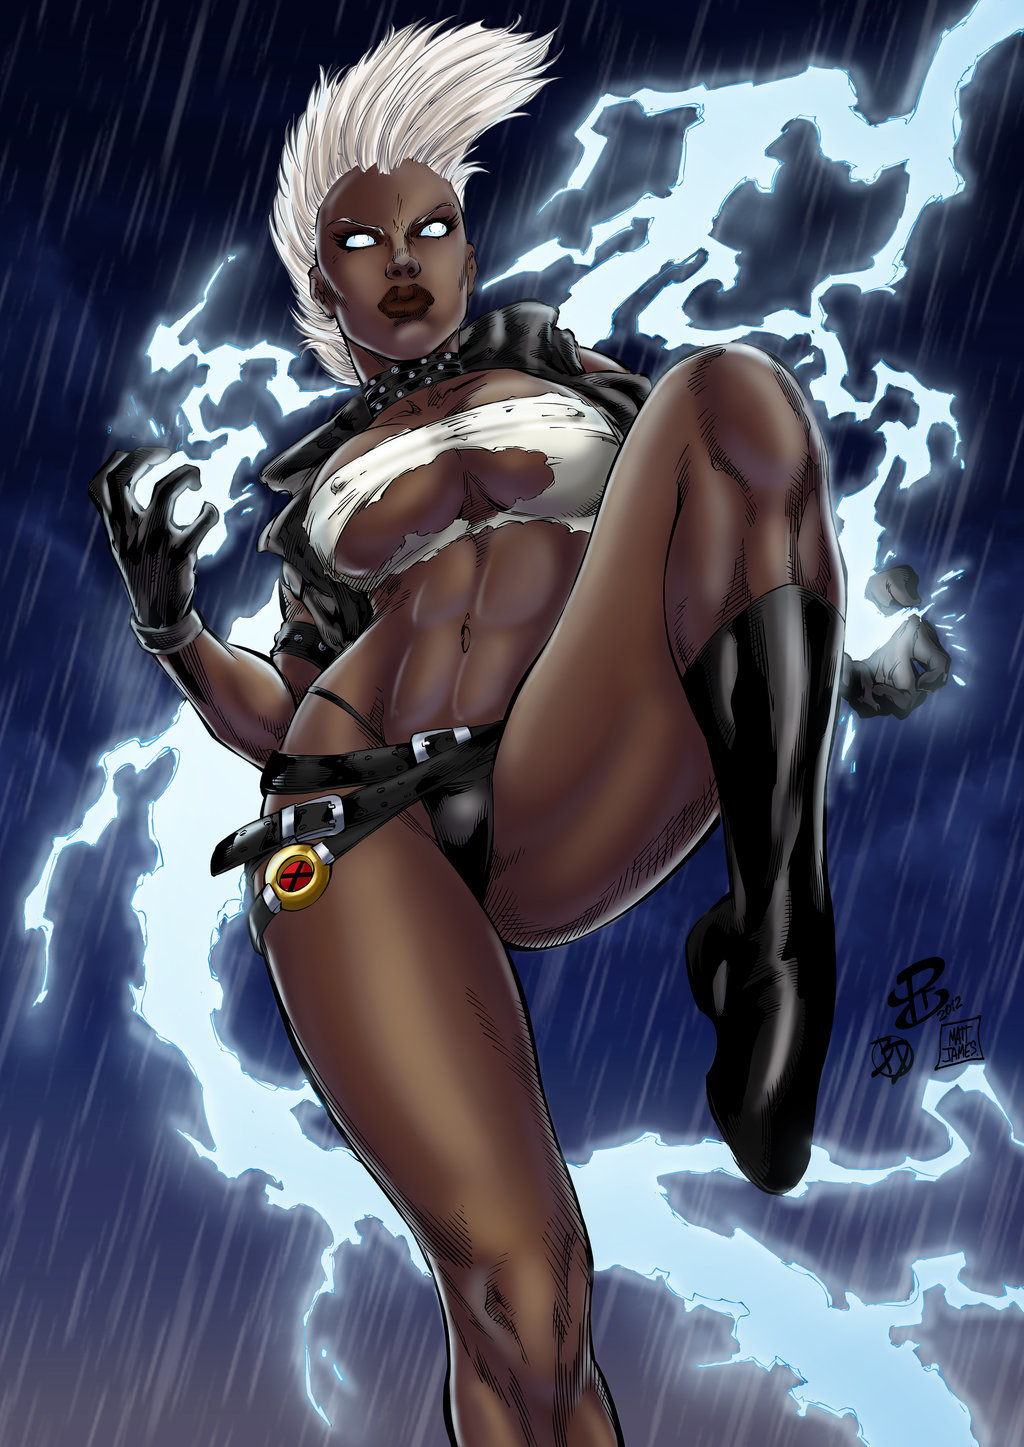 Matt james punk storm by mattjamescomicarts d7xbqb0